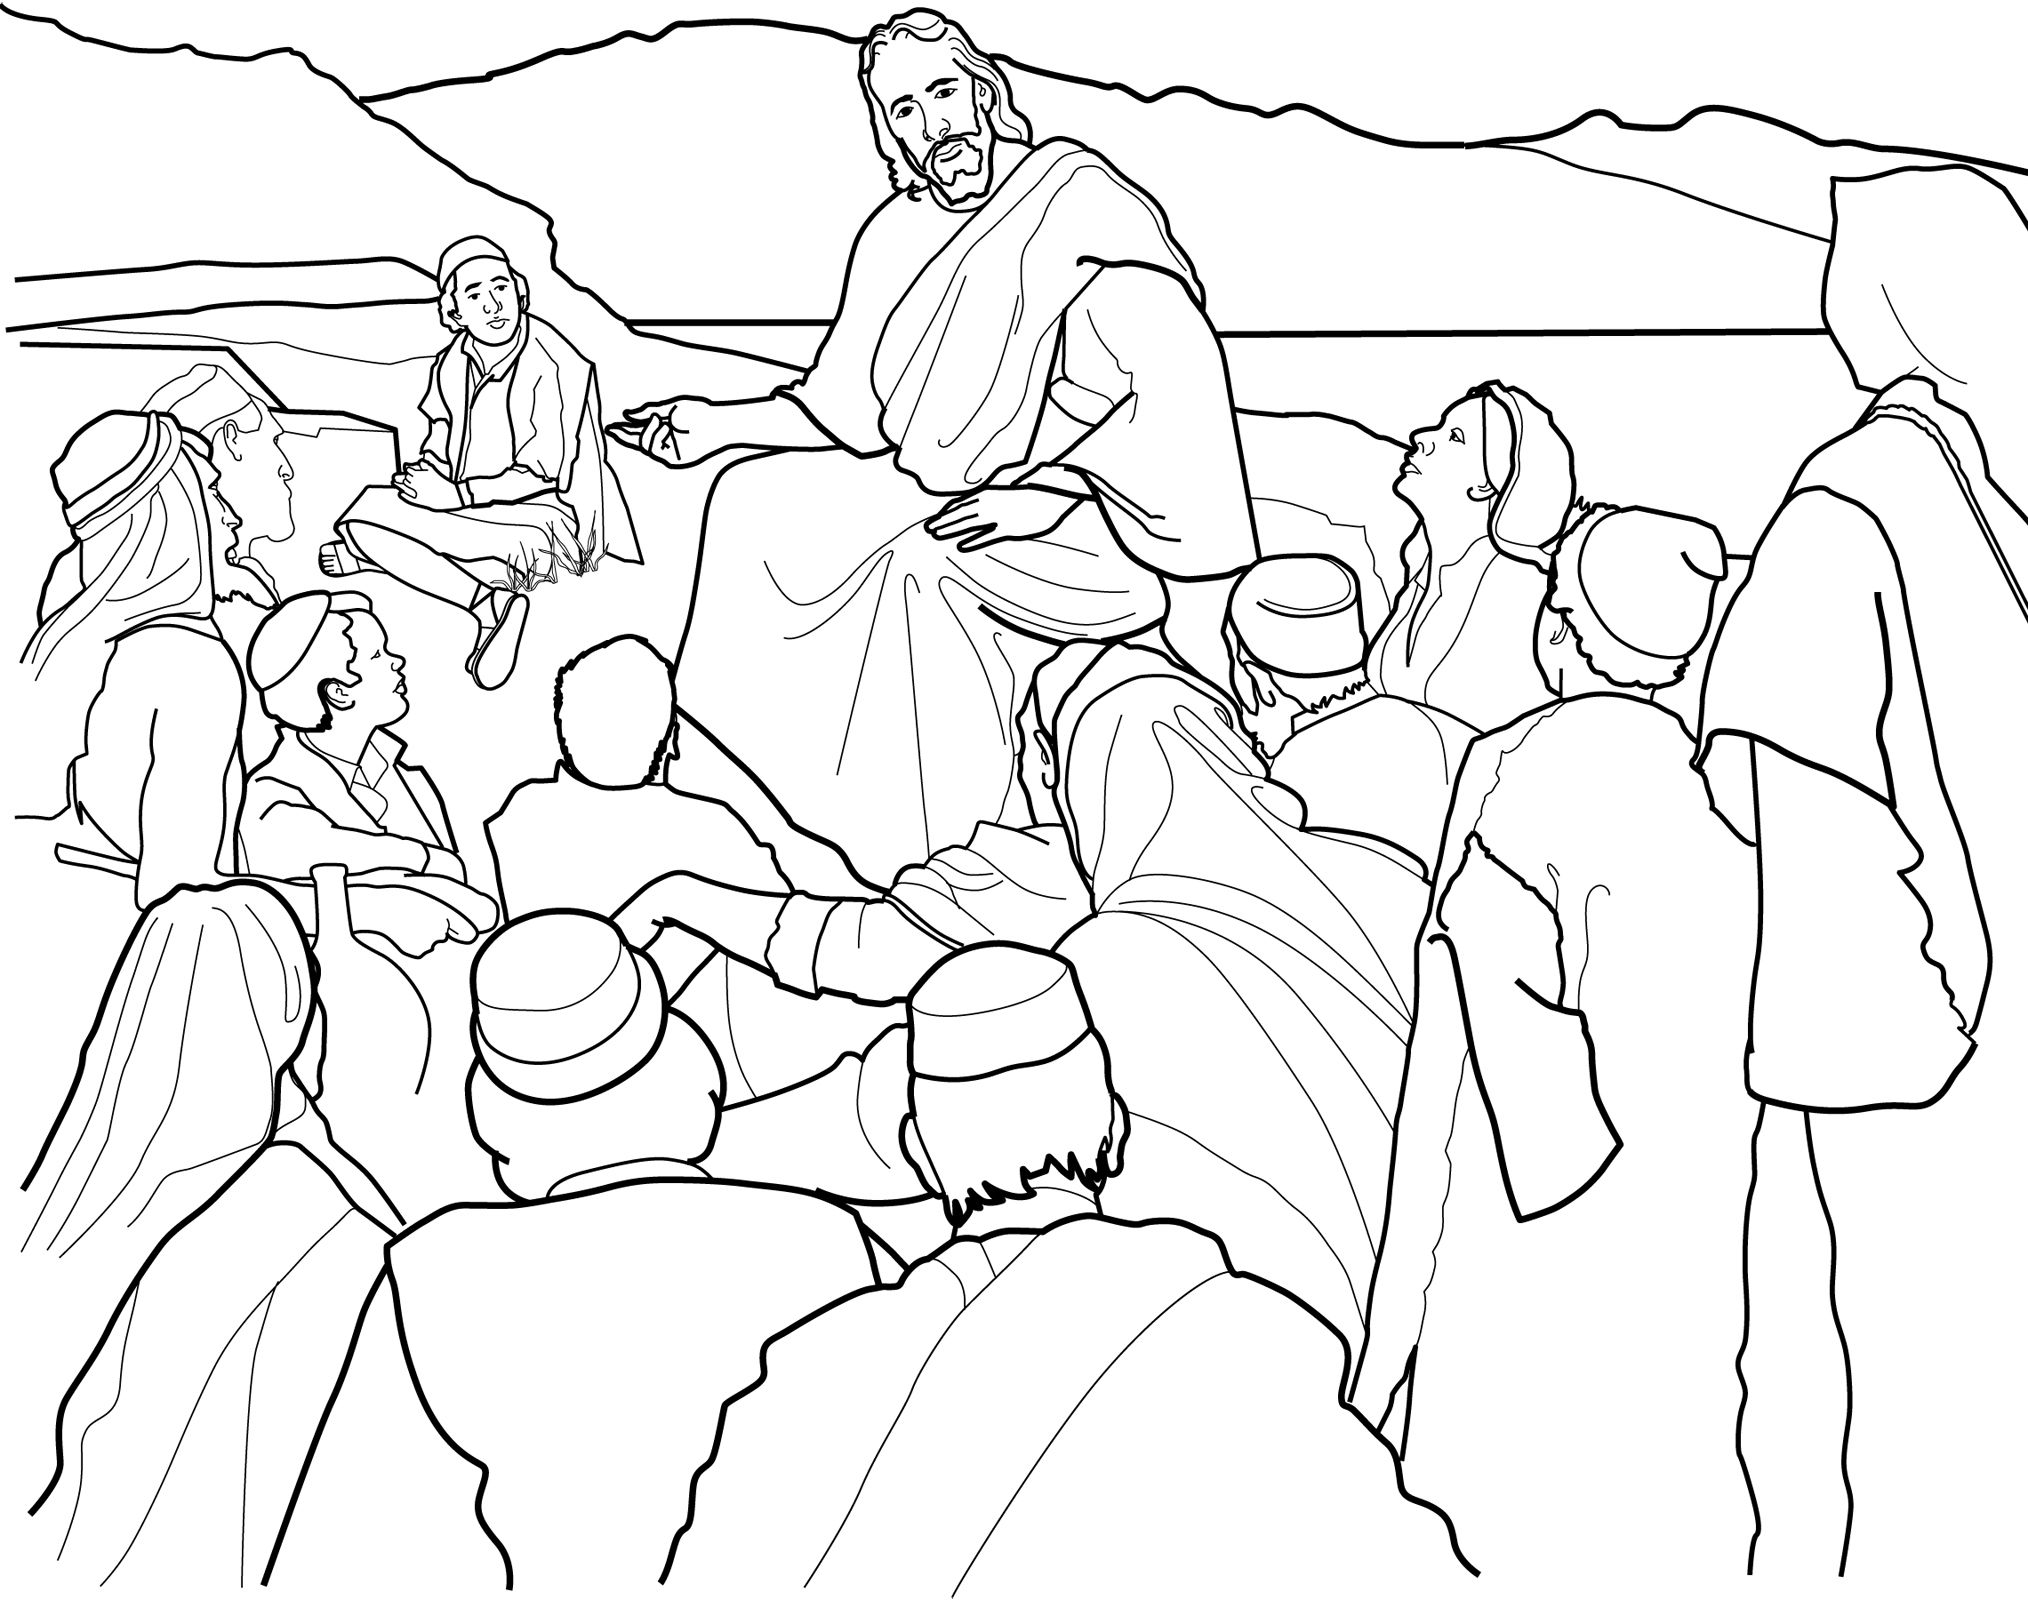 The Sermon On The Mount Coloring Page For Children From Lds Org